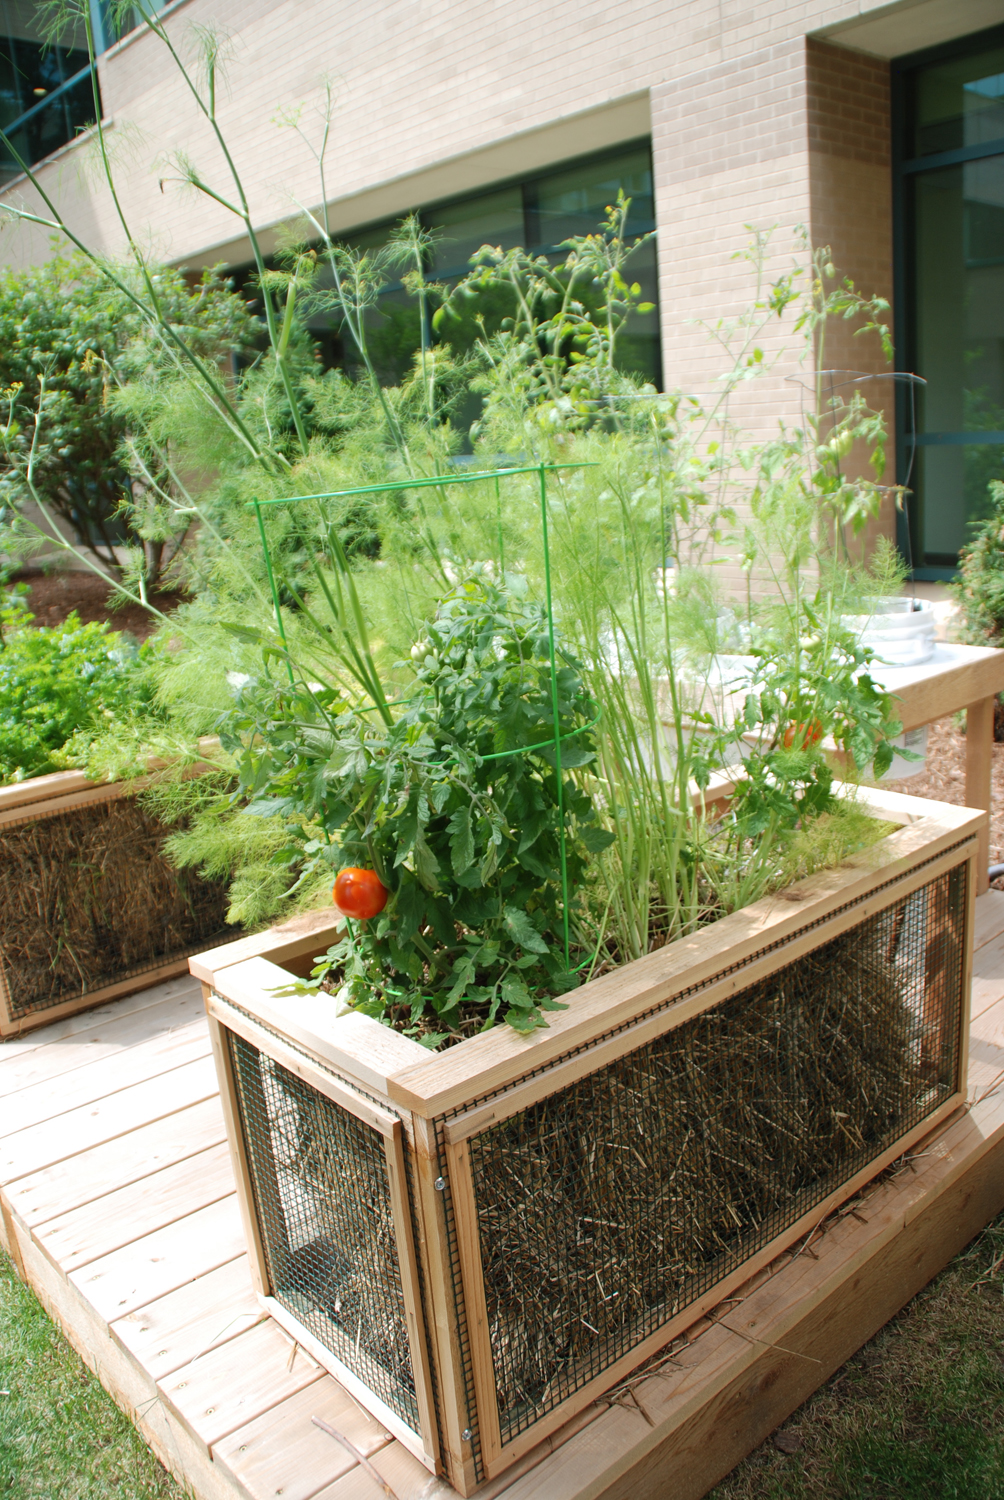 Create A Planting Bed For Seeds By Covering The Straw Bale With A One  To  Two Inch Layer Of Planting Mix.